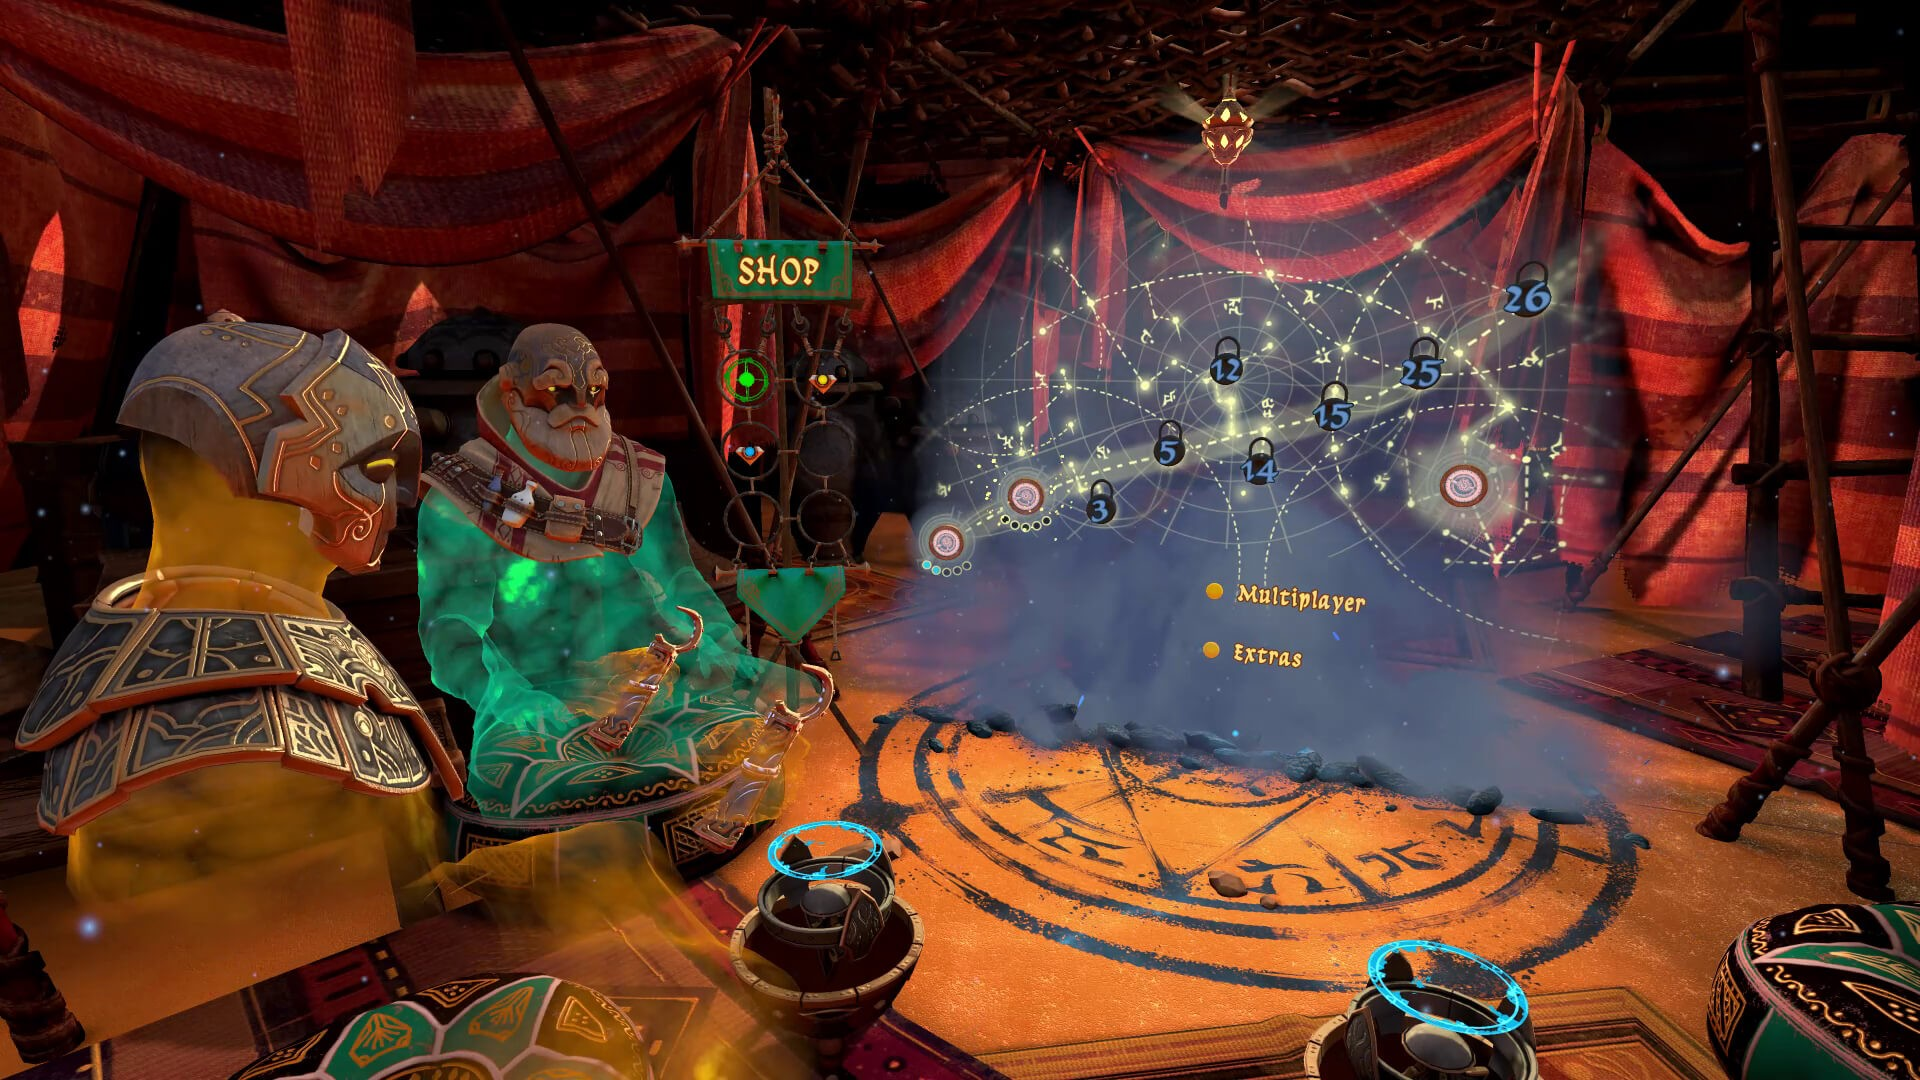 Action, Action & Adventure, adventure, Agharta Studio, Apocalipsis: The Tree of the Knowledge of Good and Evil, PlayStation VR, PS4, PS4 Review, PSVR, Stardust Odyssey, Stardust Odyssey Review, strategy